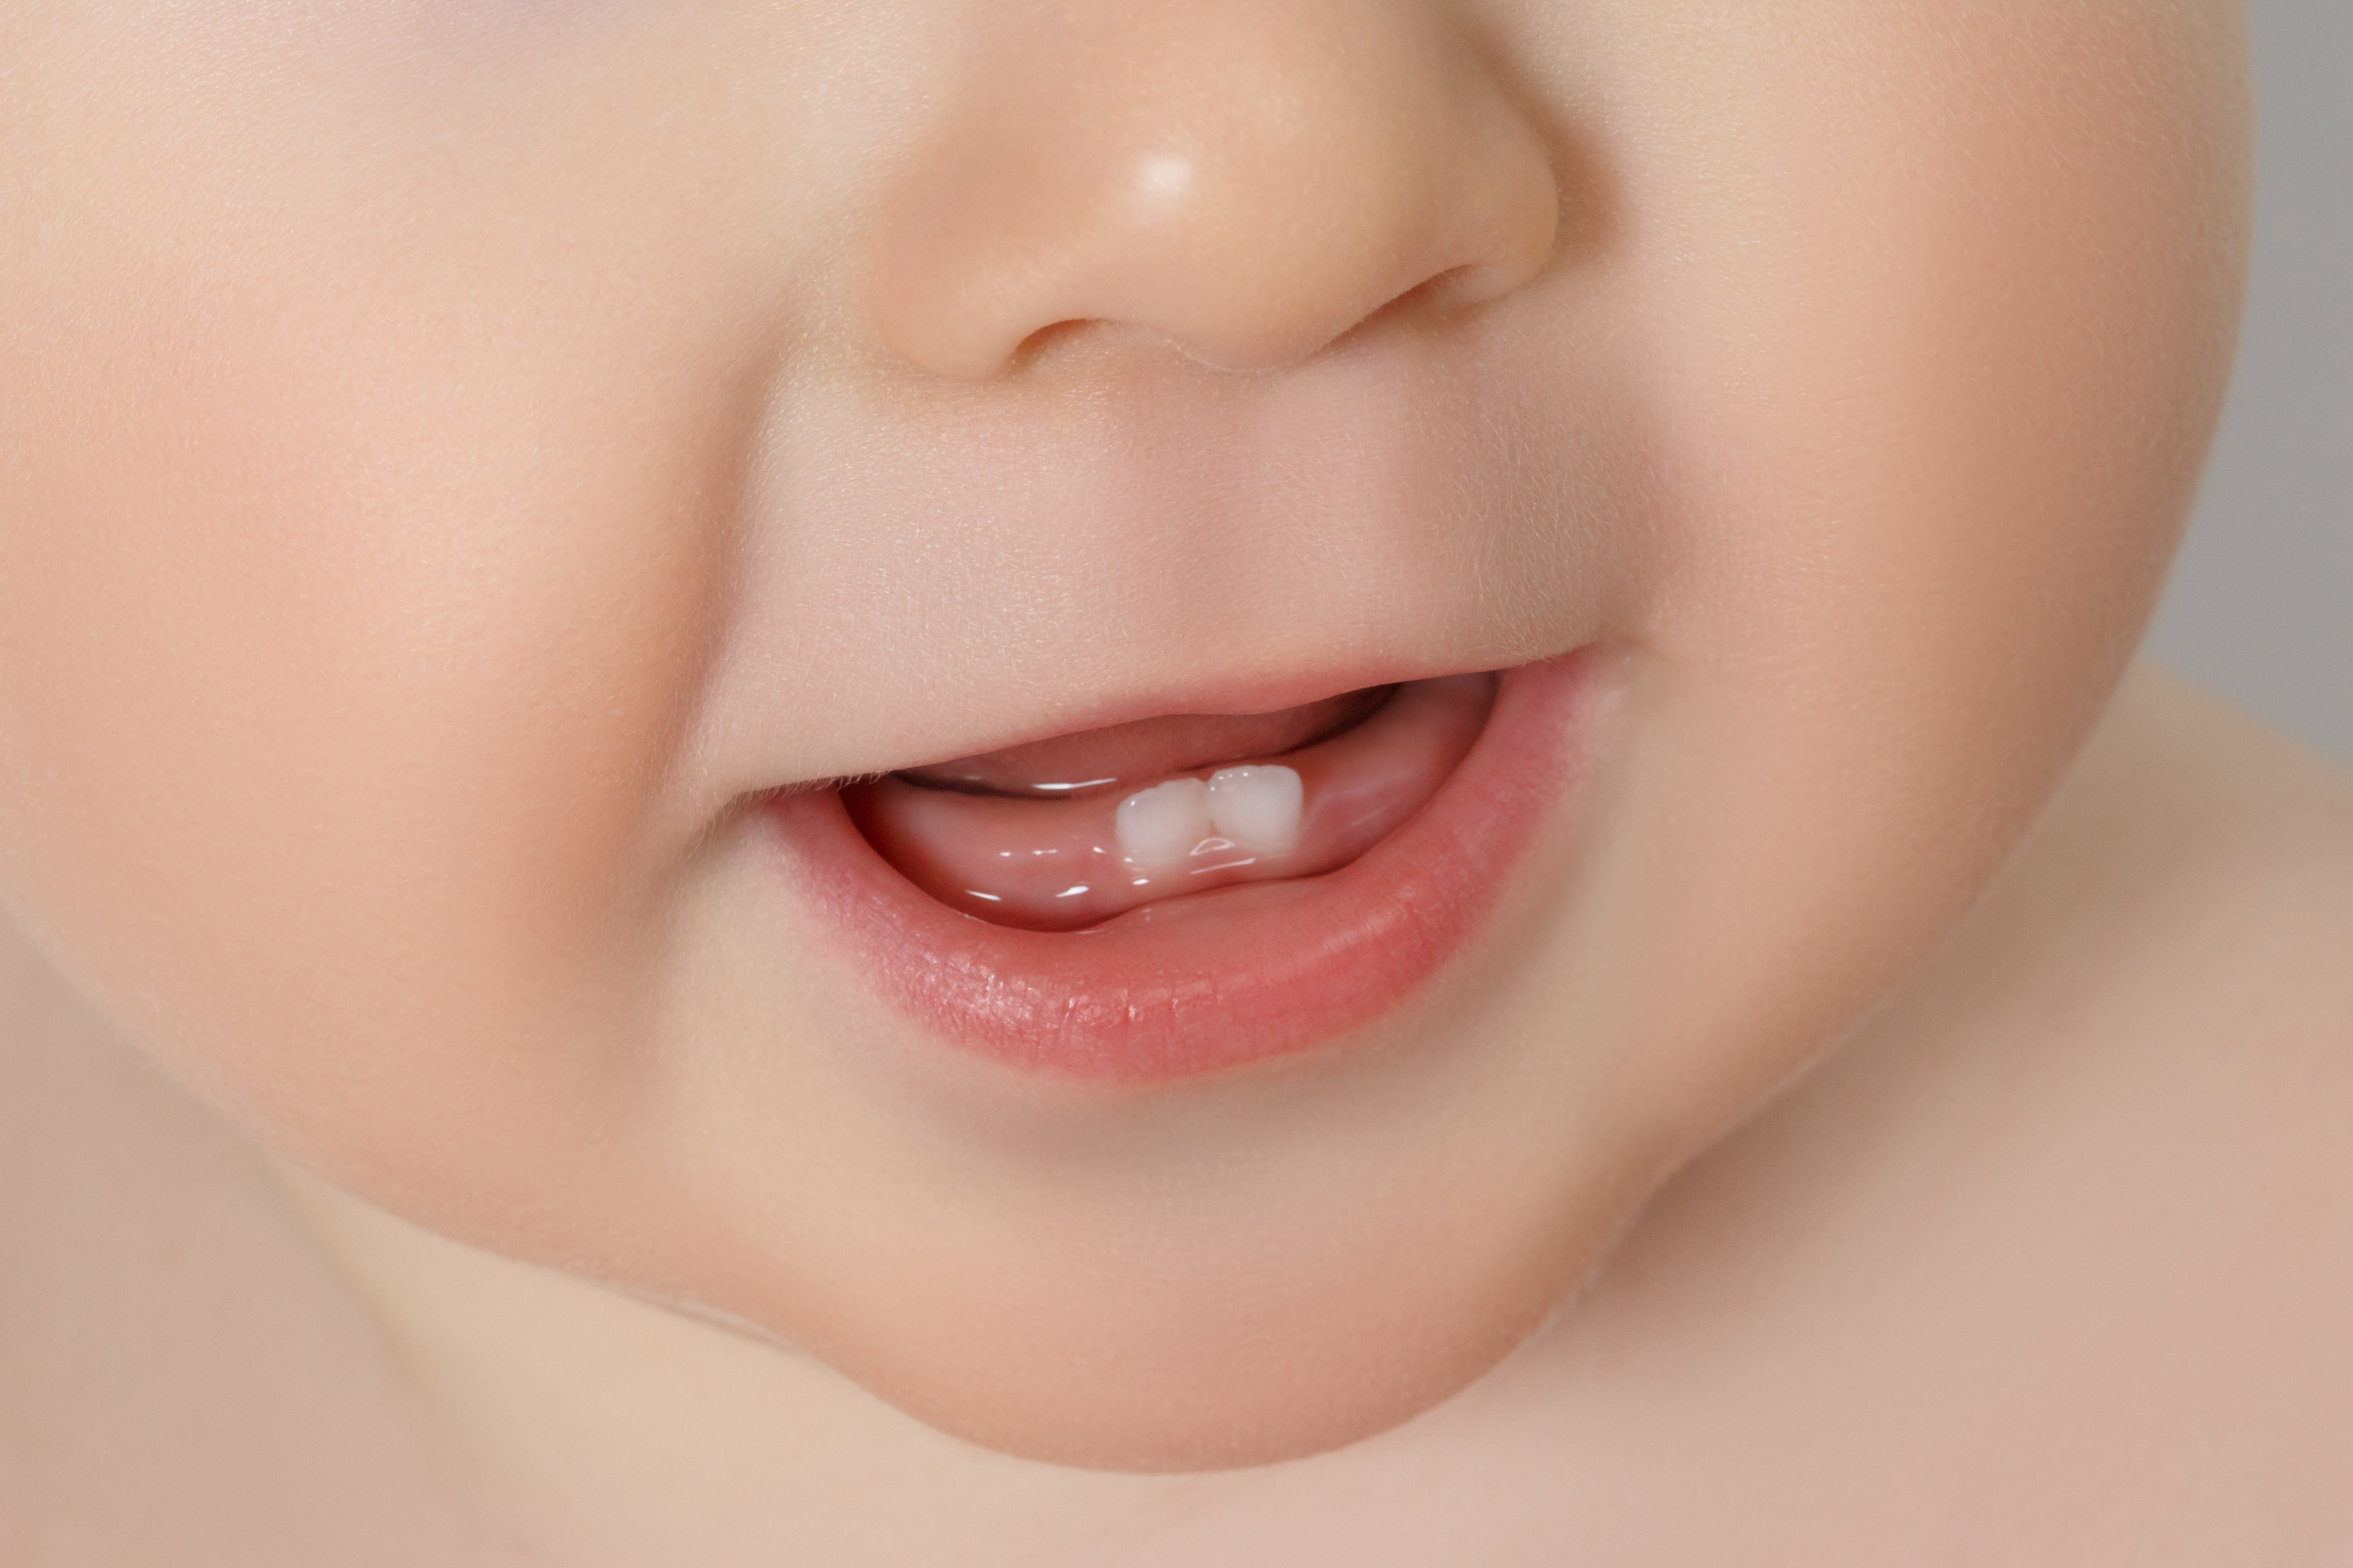 A Quick Guide and Timeline to the Eruption of the Baby Teeth